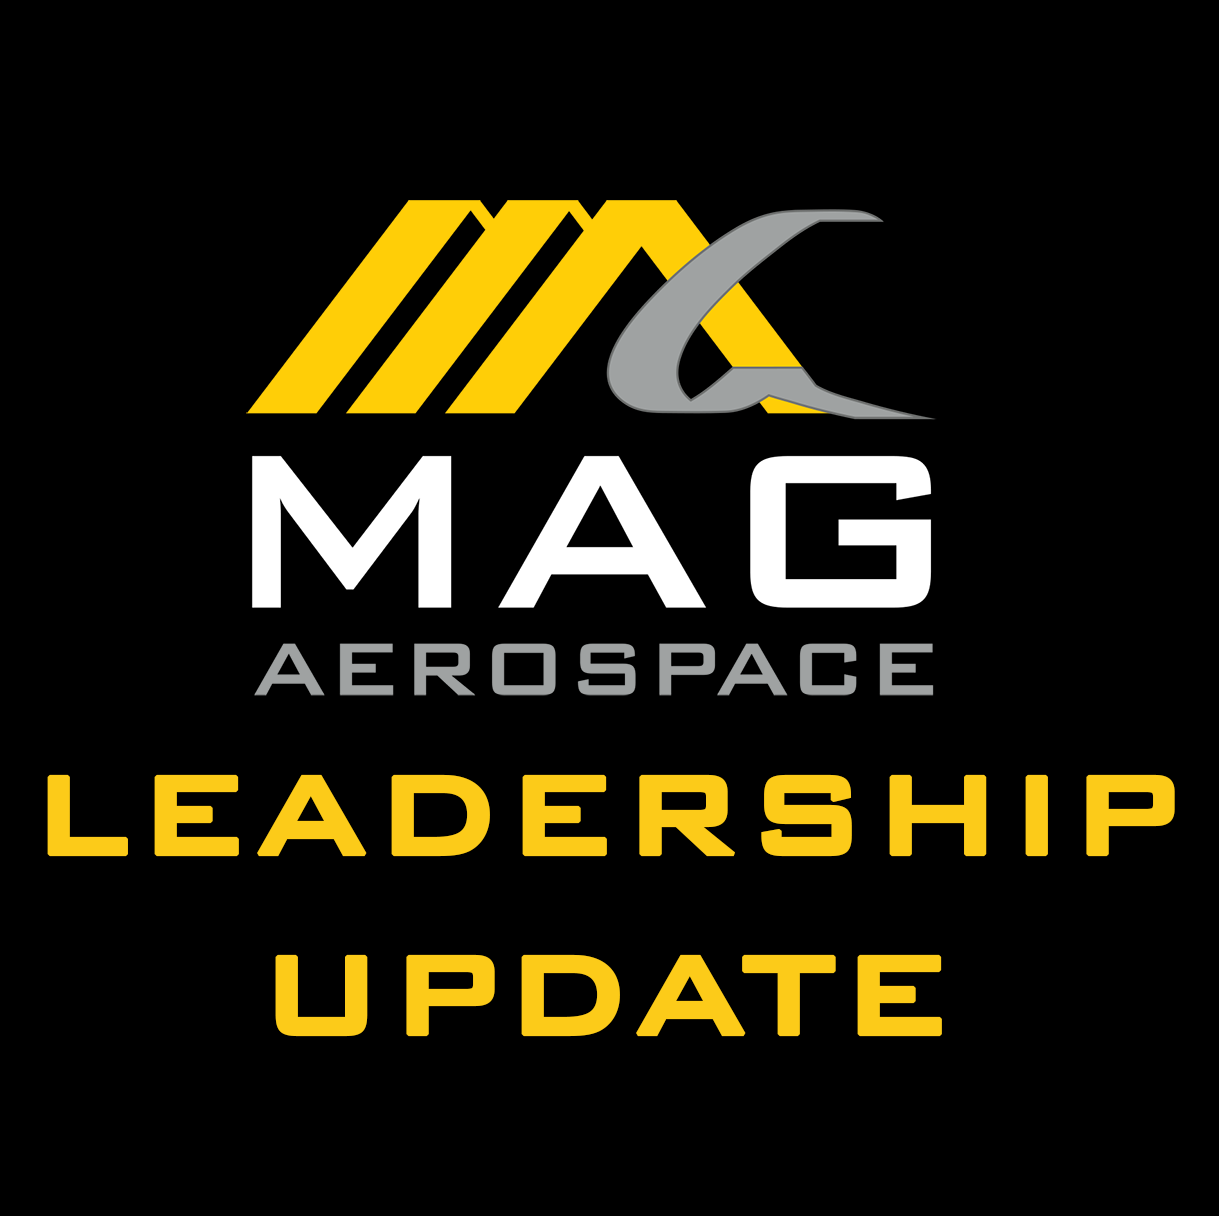 MAG Aerospace Leadership Update